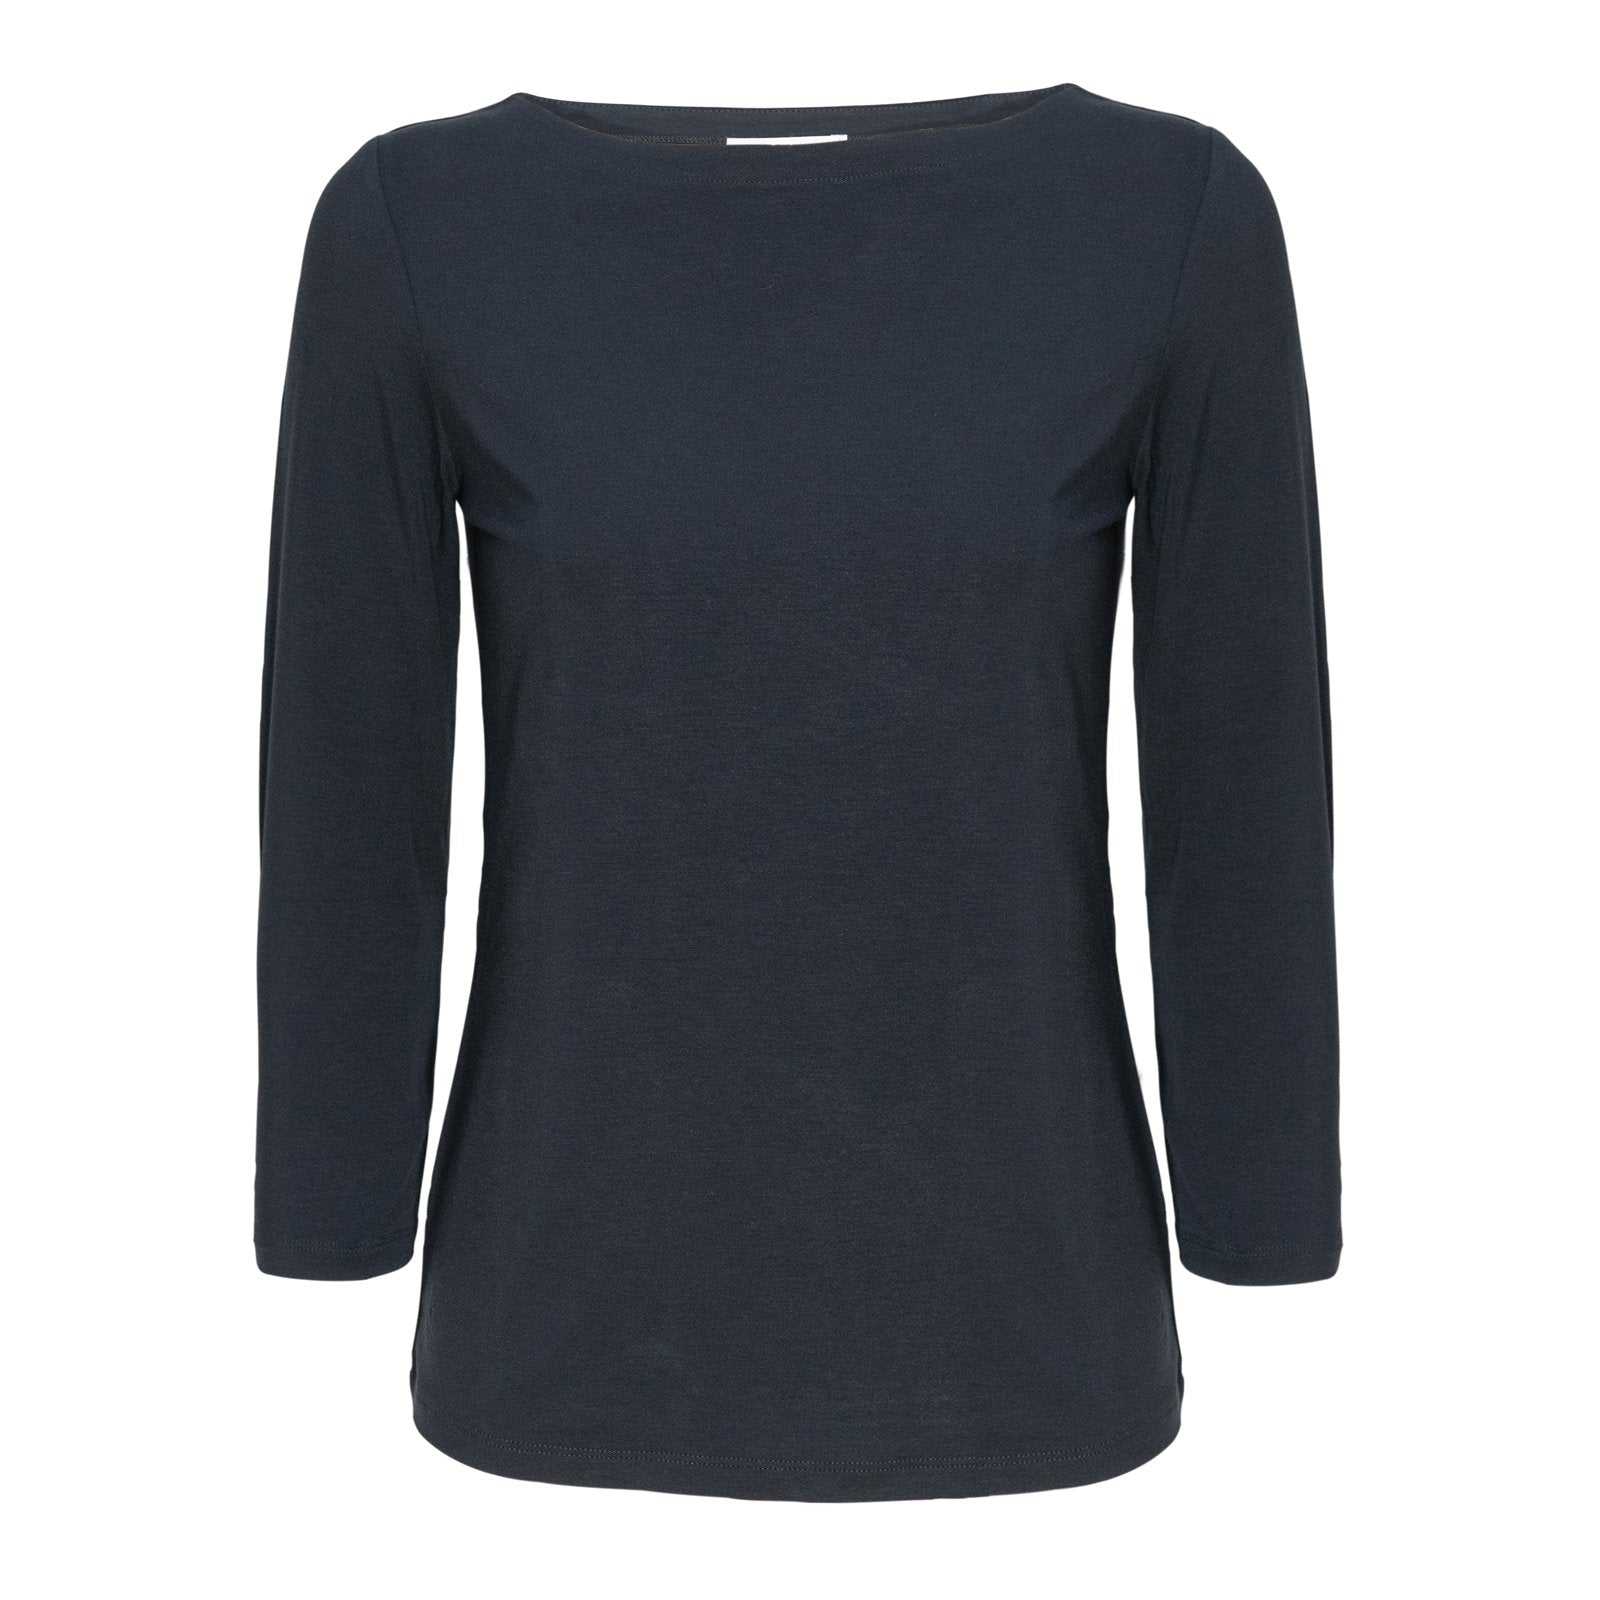 Women Barchetta Neck Blu Knitwear PUR1242 - Jennifer Tattanelli